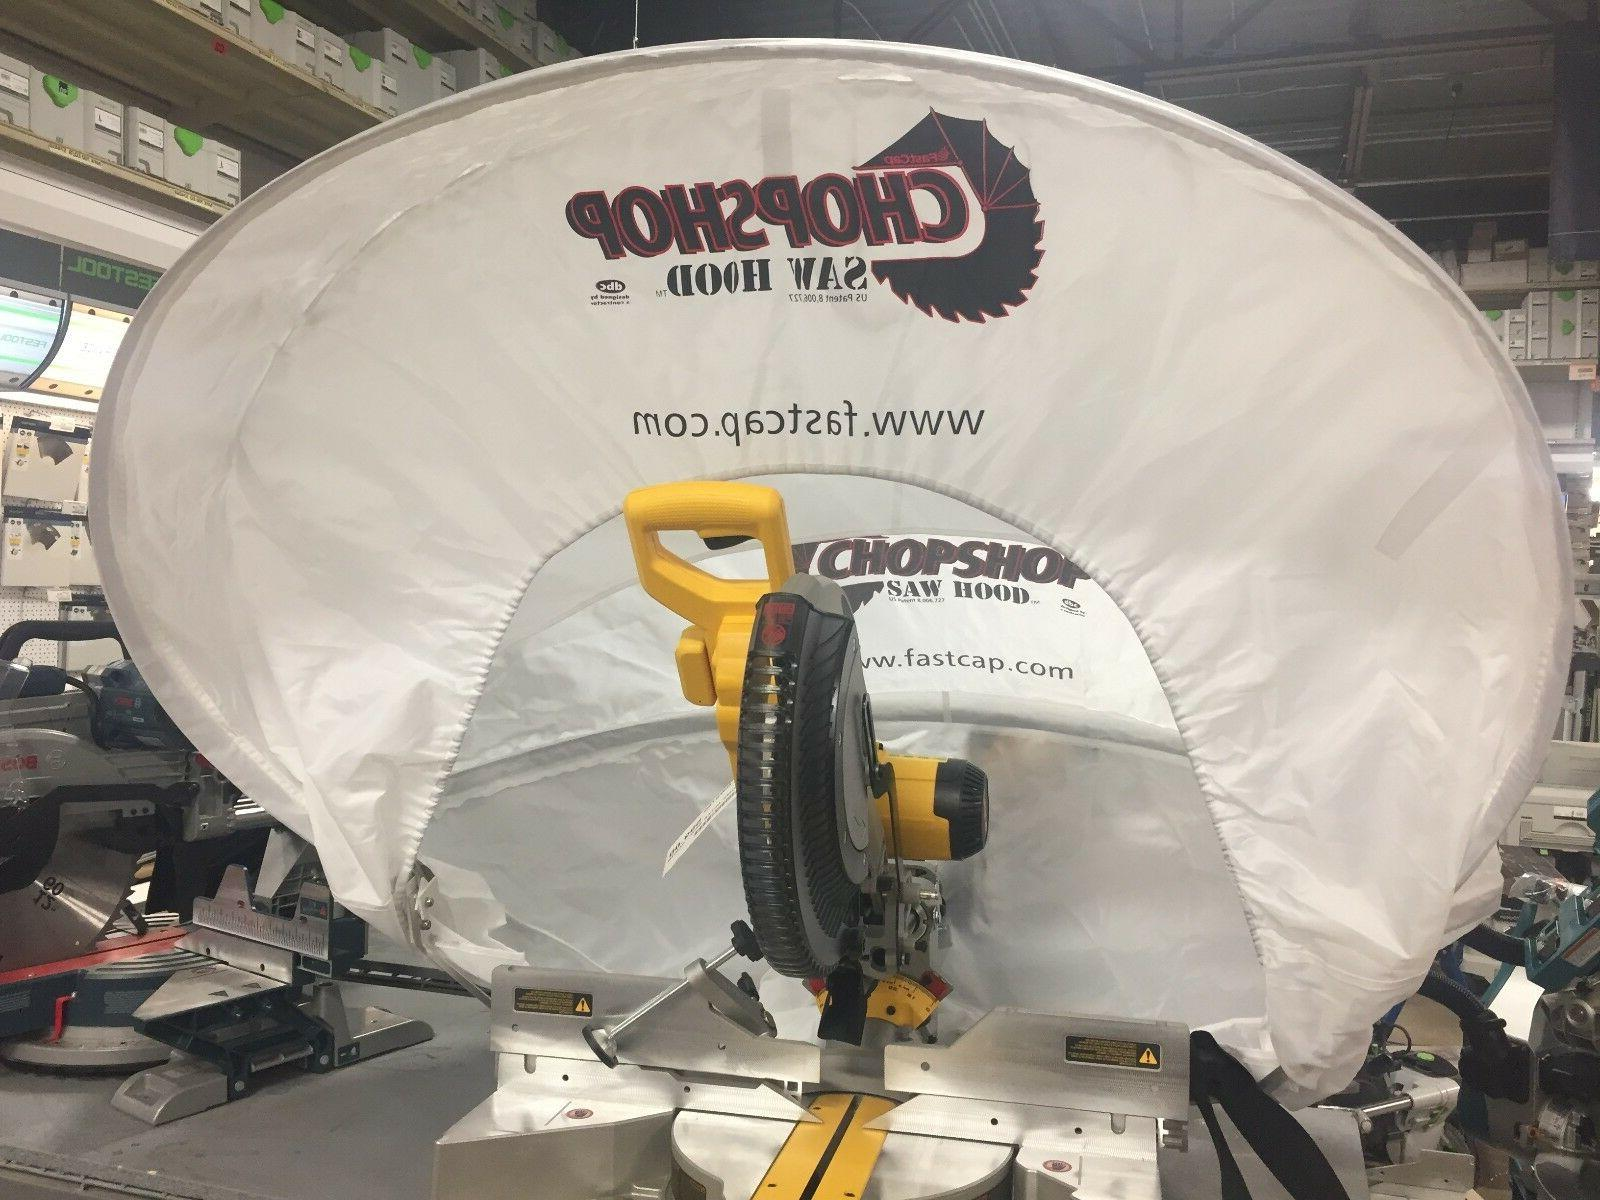 new sawhood pro for chop saws